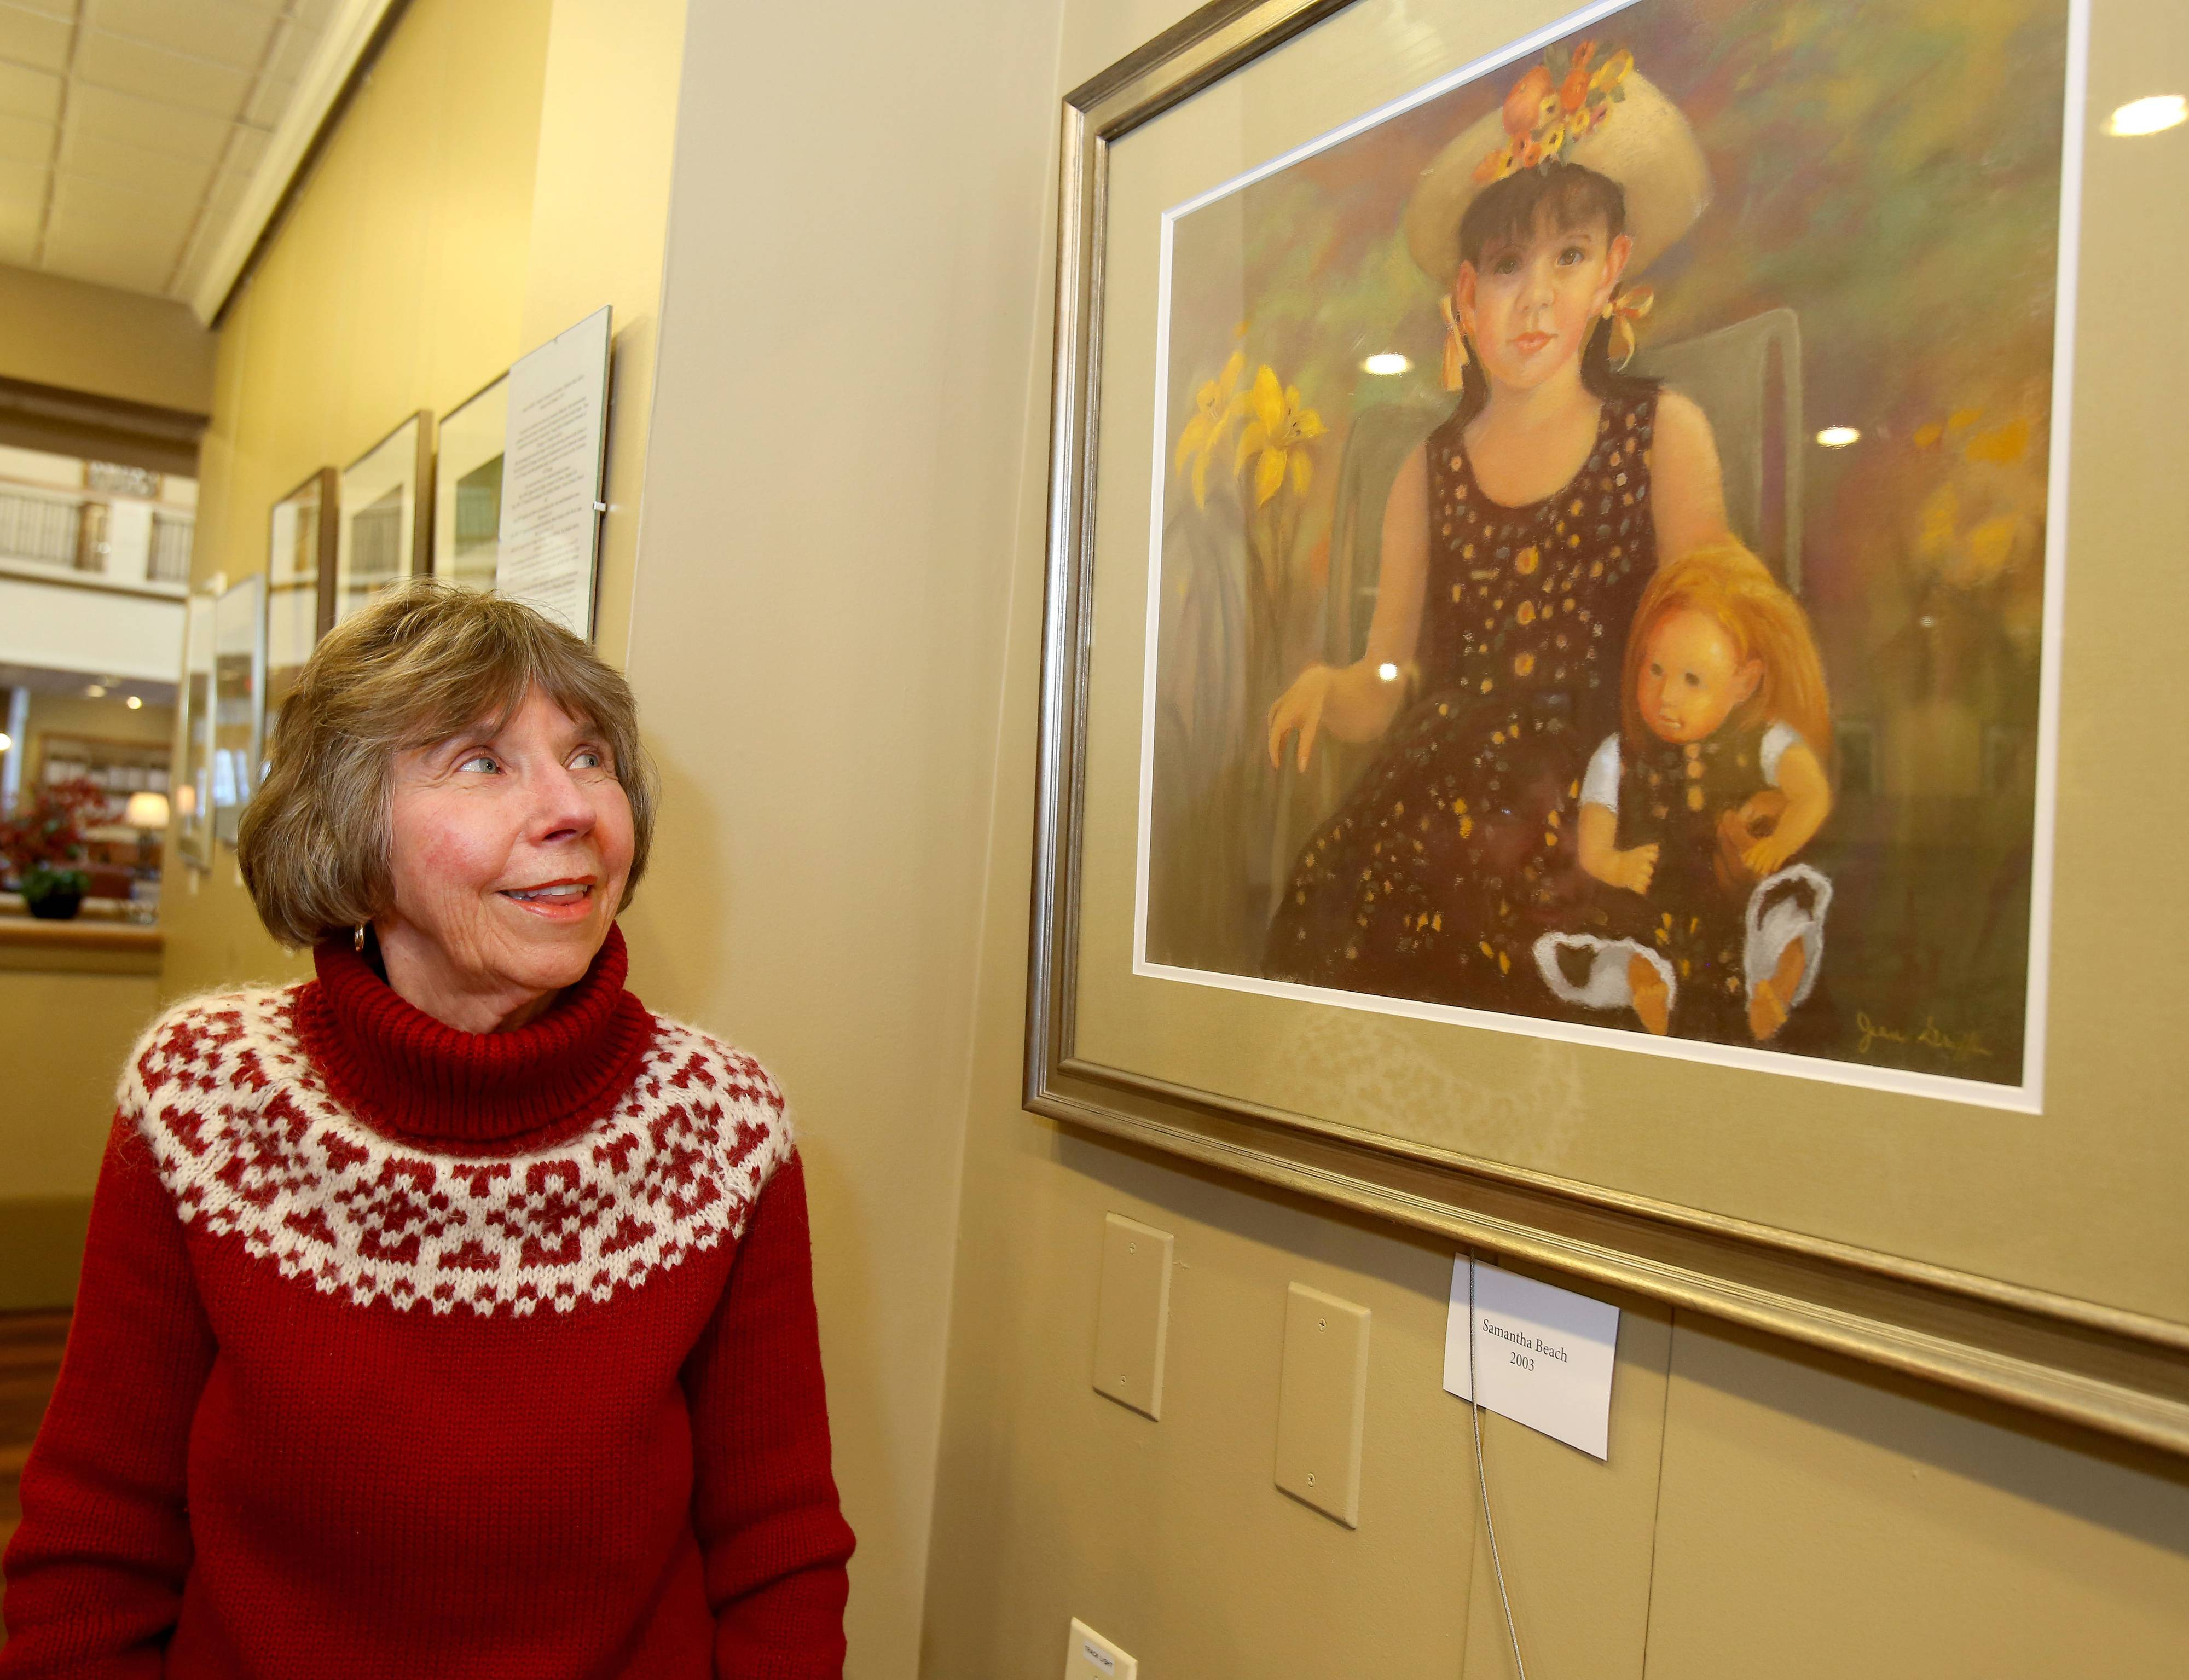 This girl with a doll is one of the portraits Glen Ellyn artist Jean Griffin has hanging at the Windsor Park retirement community in Carol Stream during February.